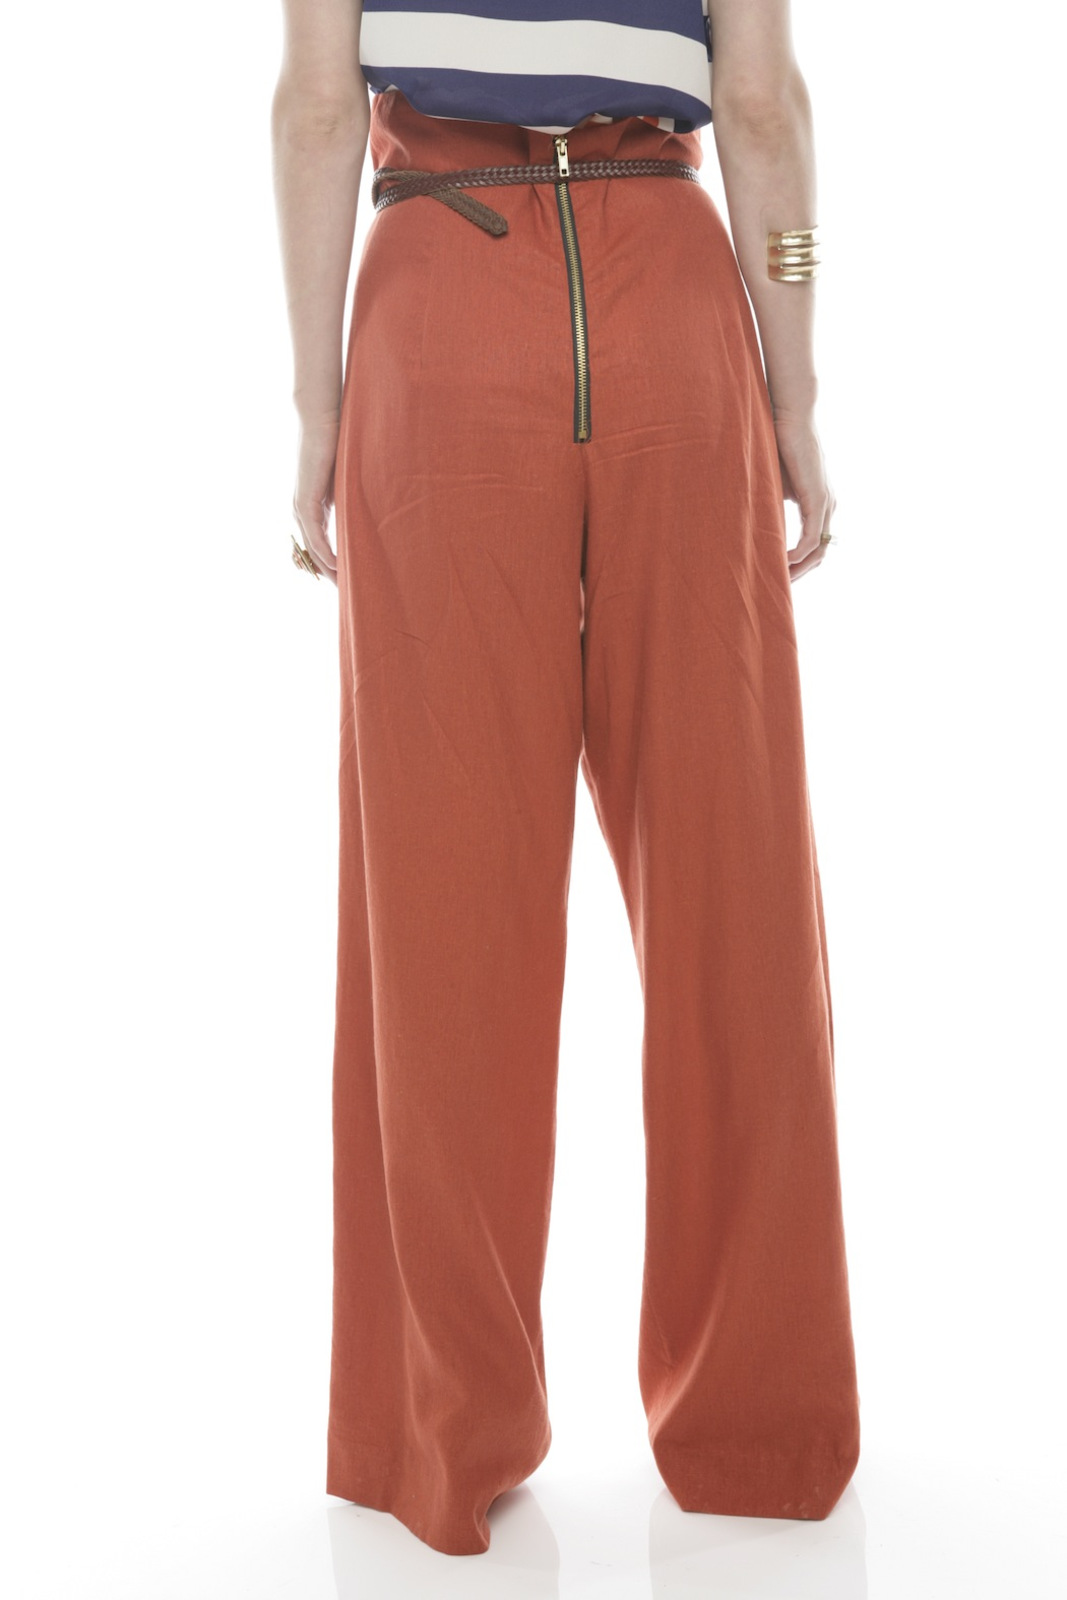 Devon Thomas Collection Wide-Leg Pants - Back Cropped Image